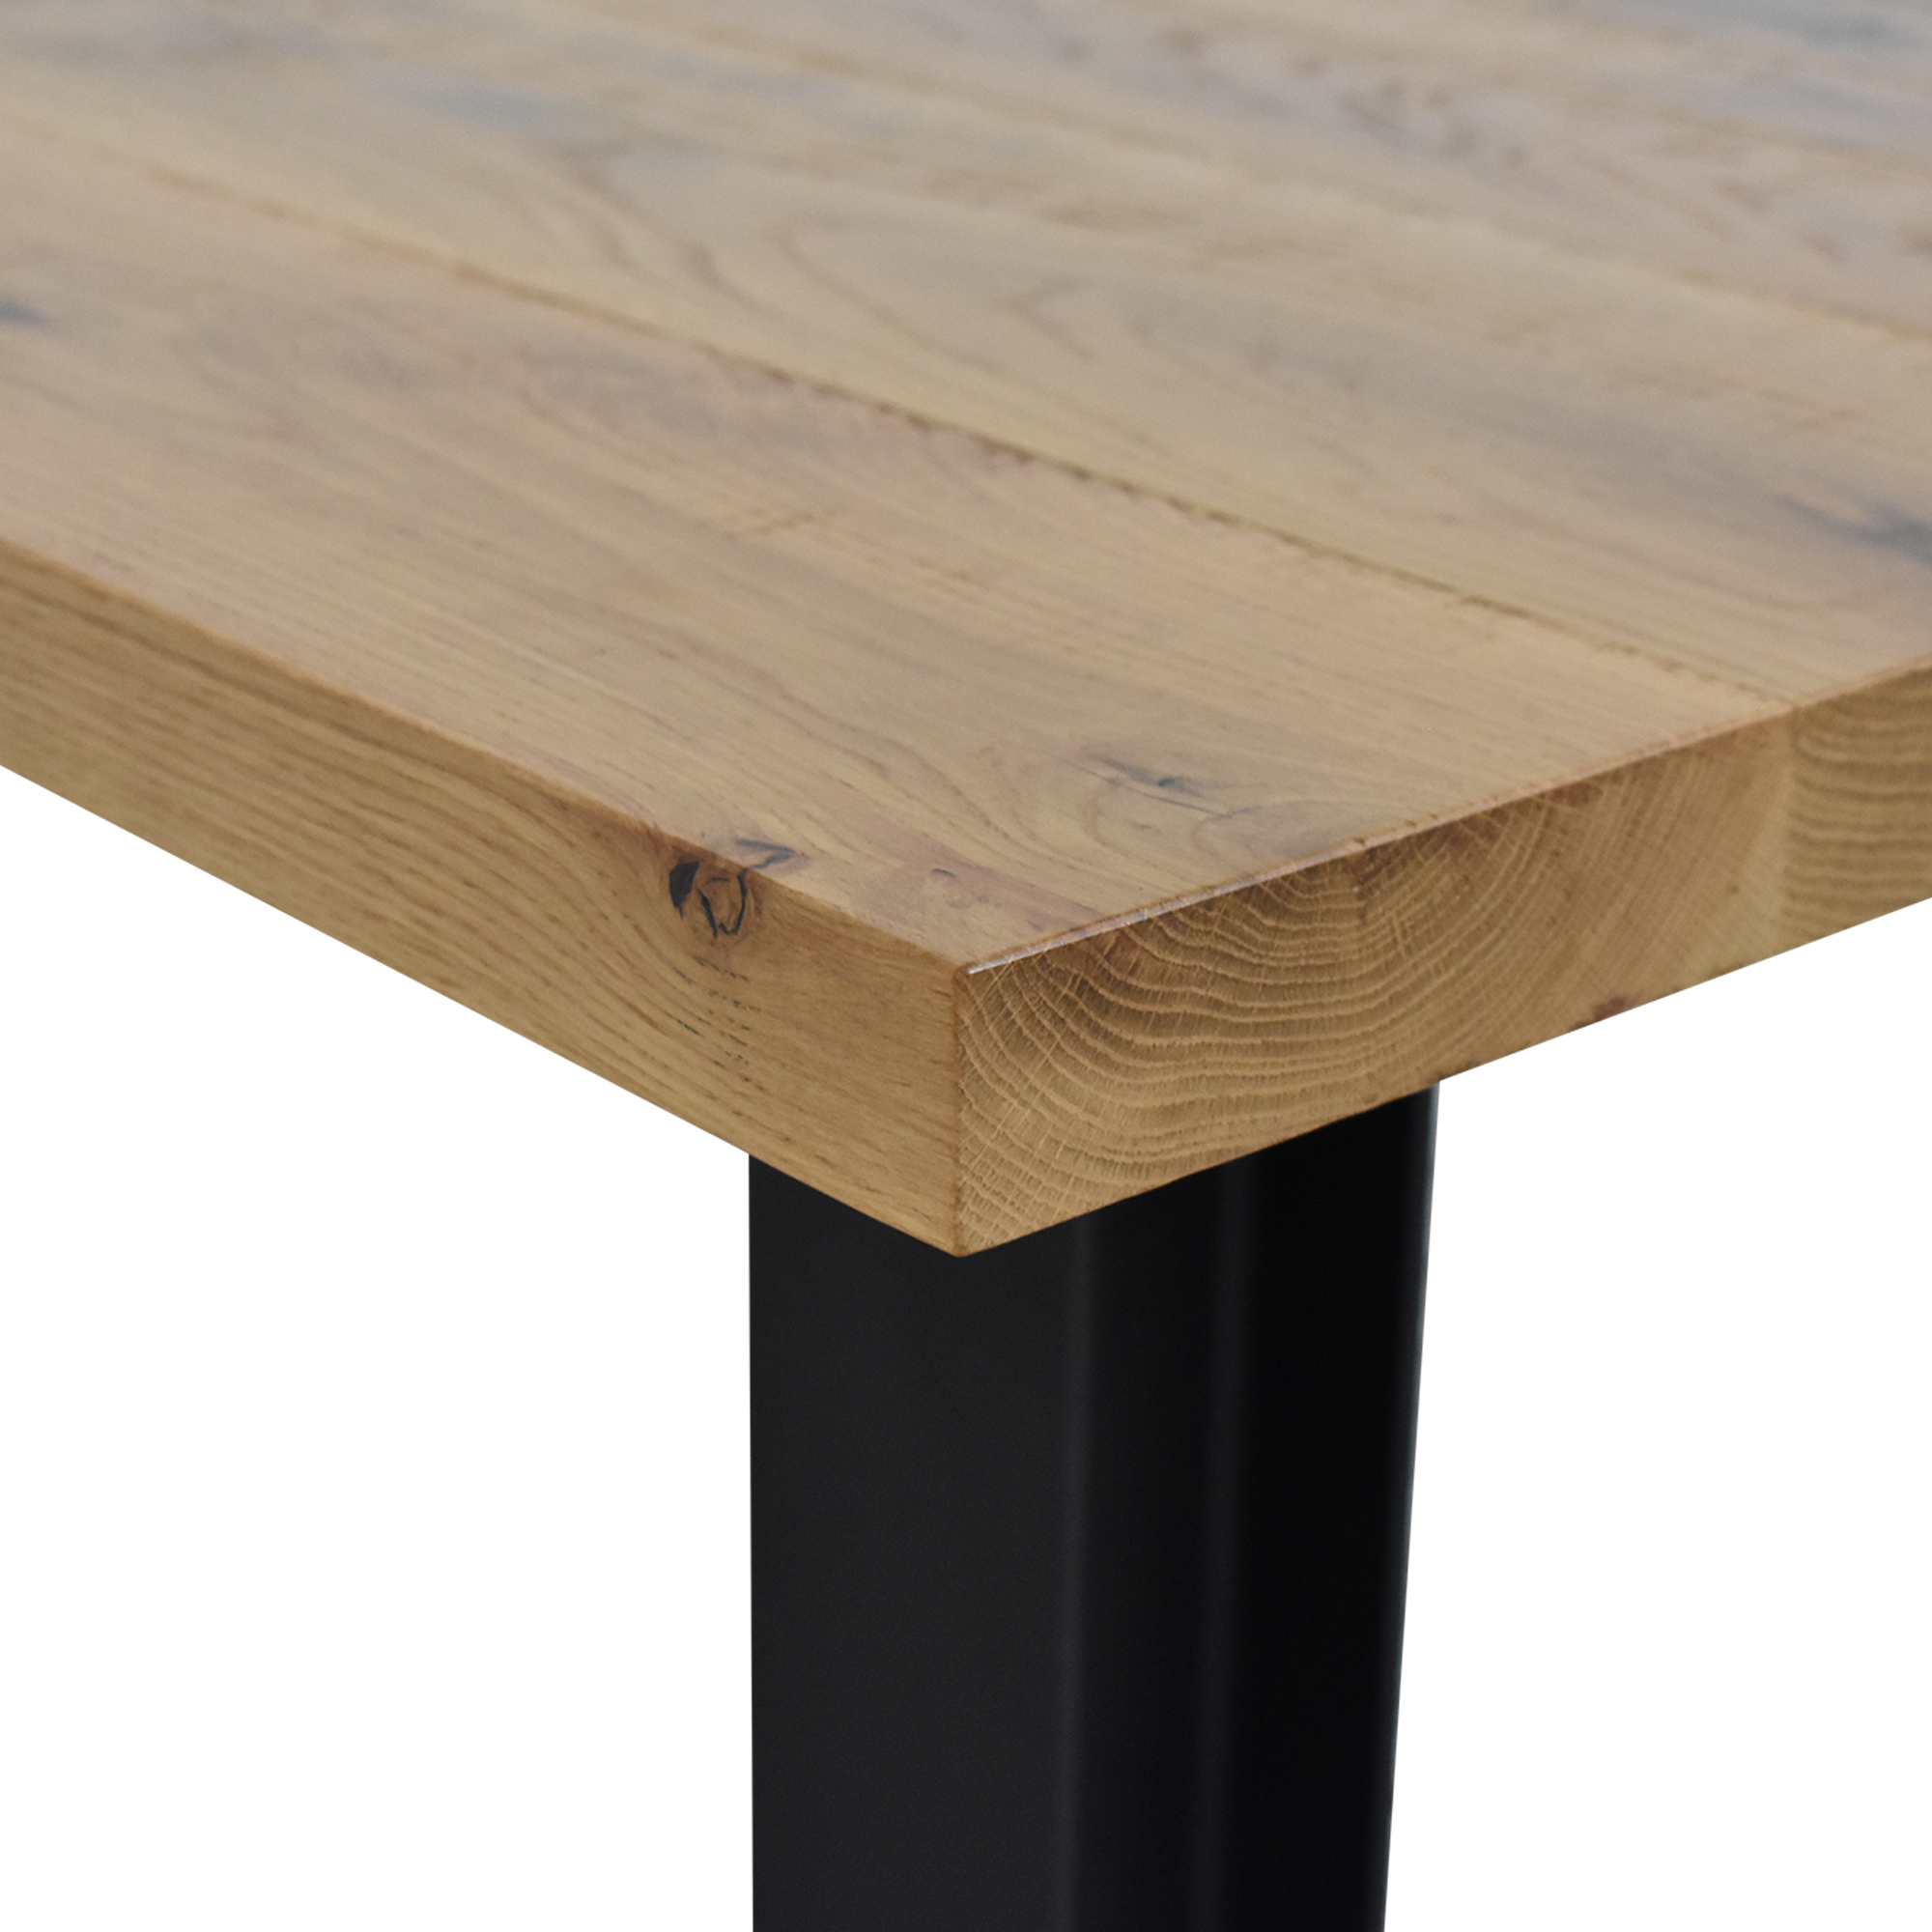 Crow Works Crow Works Fixed I-Beam Square Table pa